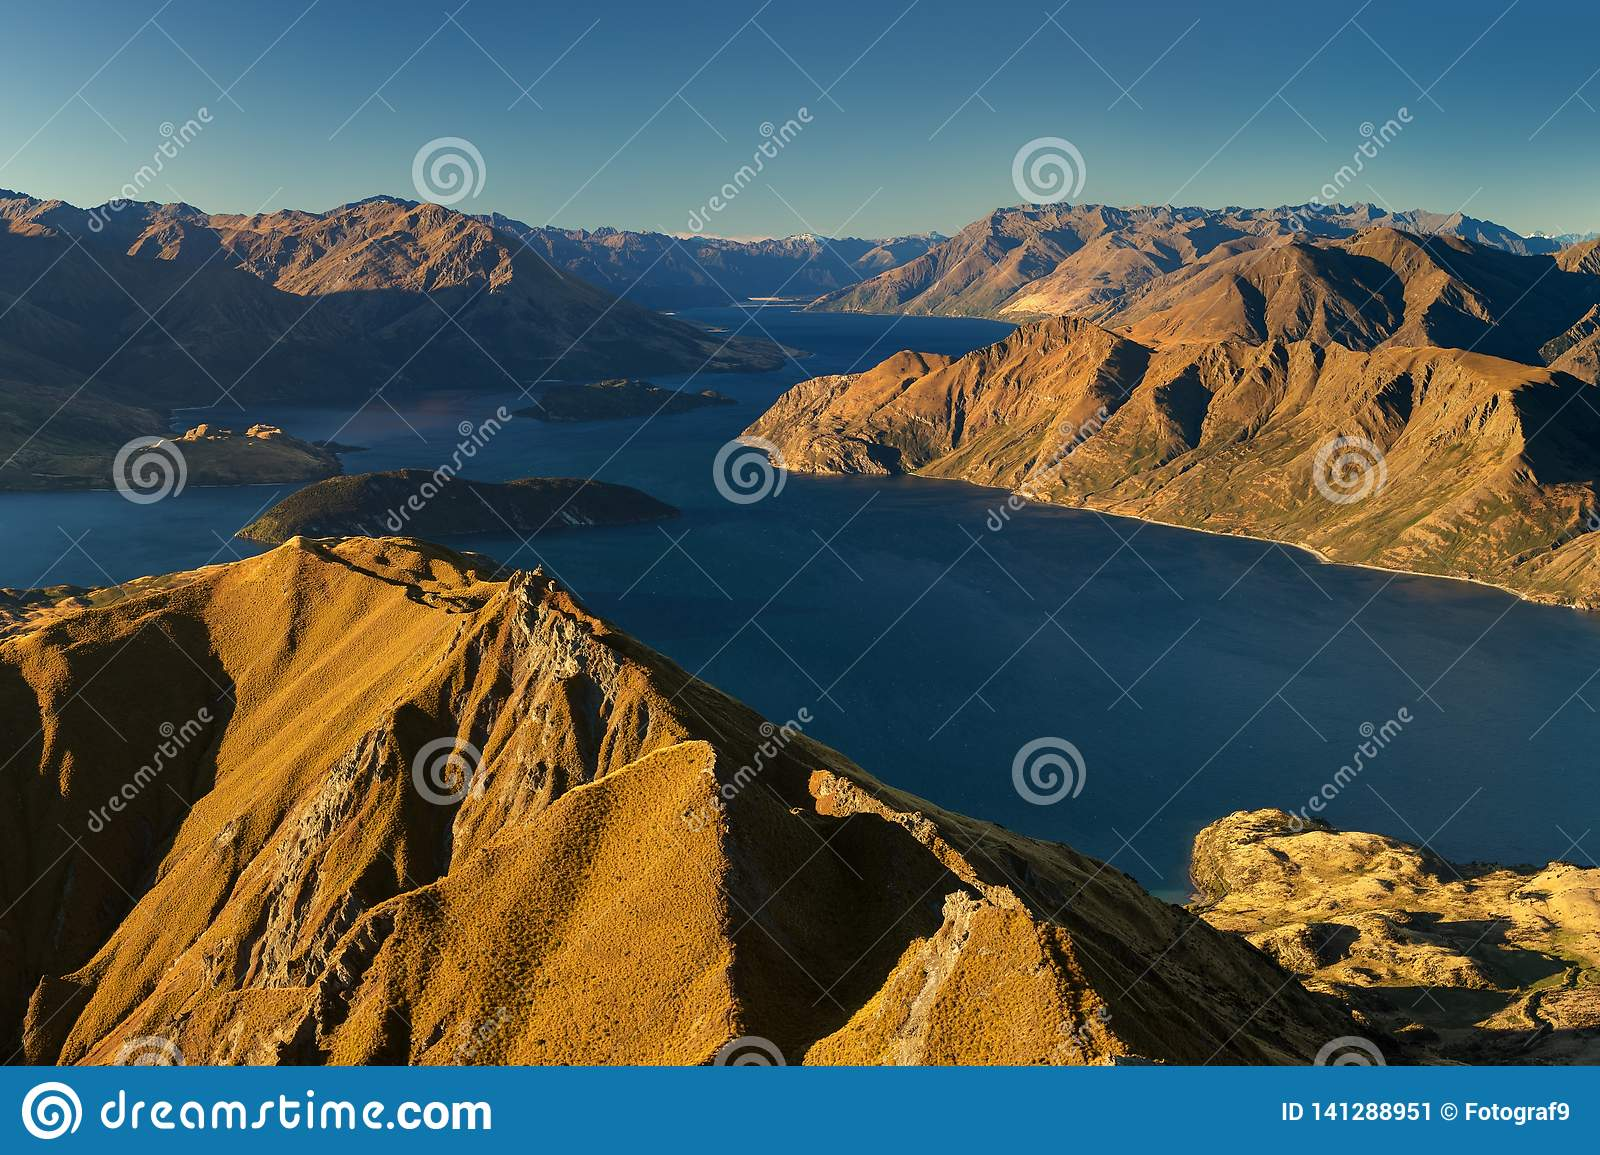 Panorama at sunset of Roys Peak between Wanaka and Queenstown with a lake and Mount Aspiring and cook of the new zealand alps.